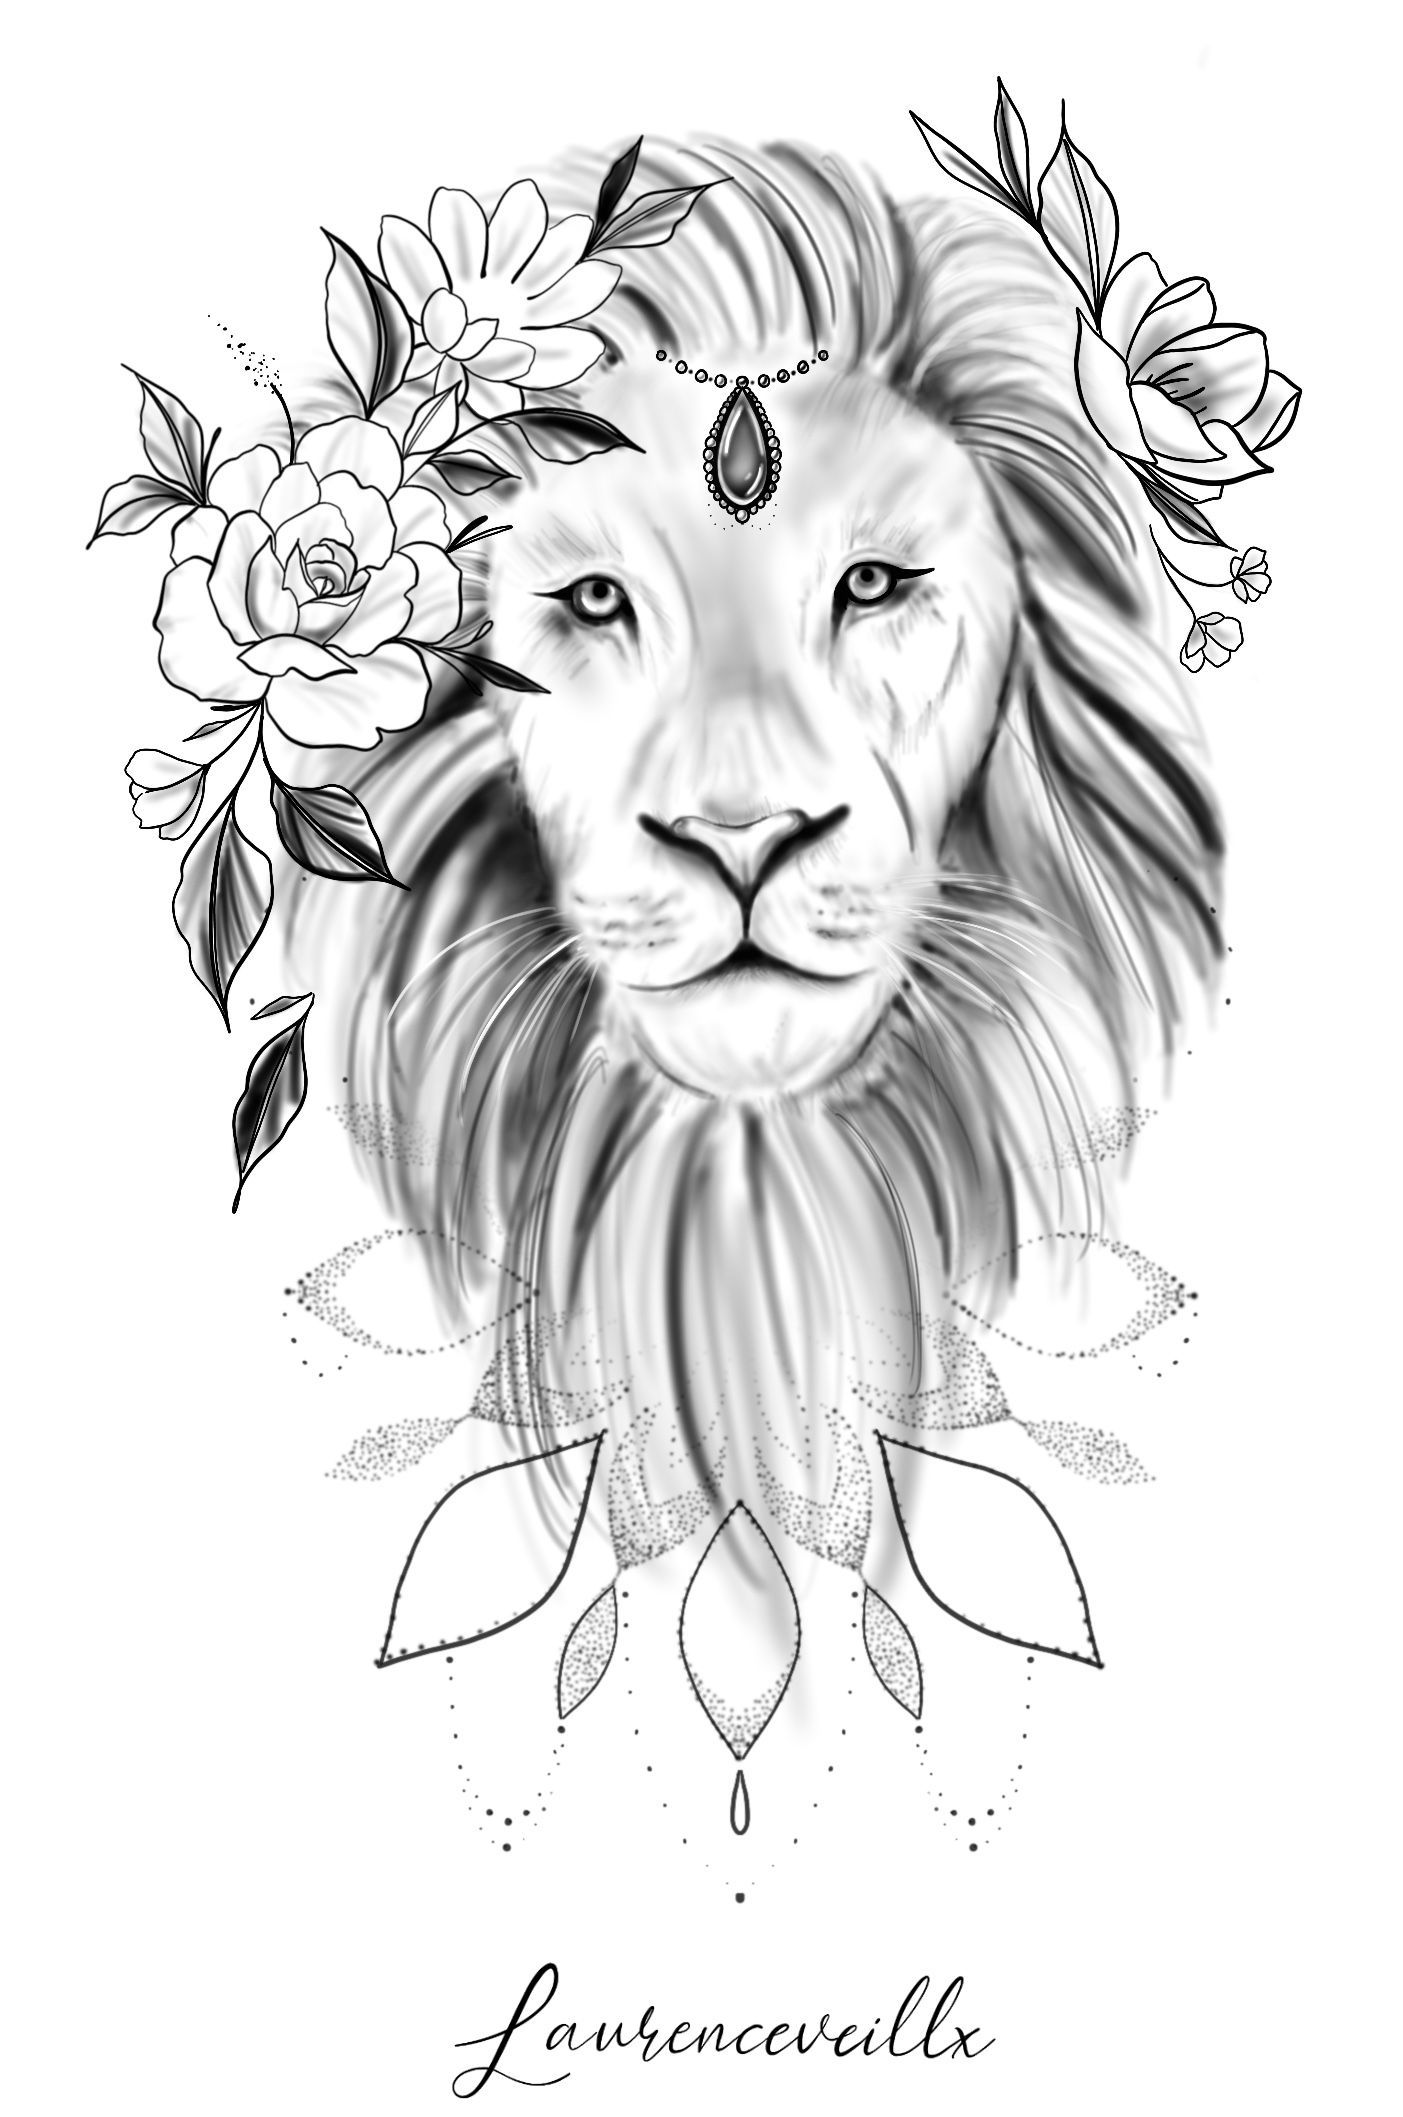 Lion Flower Mandala Tattoo Design Laurenceveillx Design Flower Laurenceveillx Lion Mandala Tattoo In 2020 Mandala Tattoo Design Lion Tattoo Design Lion Flower